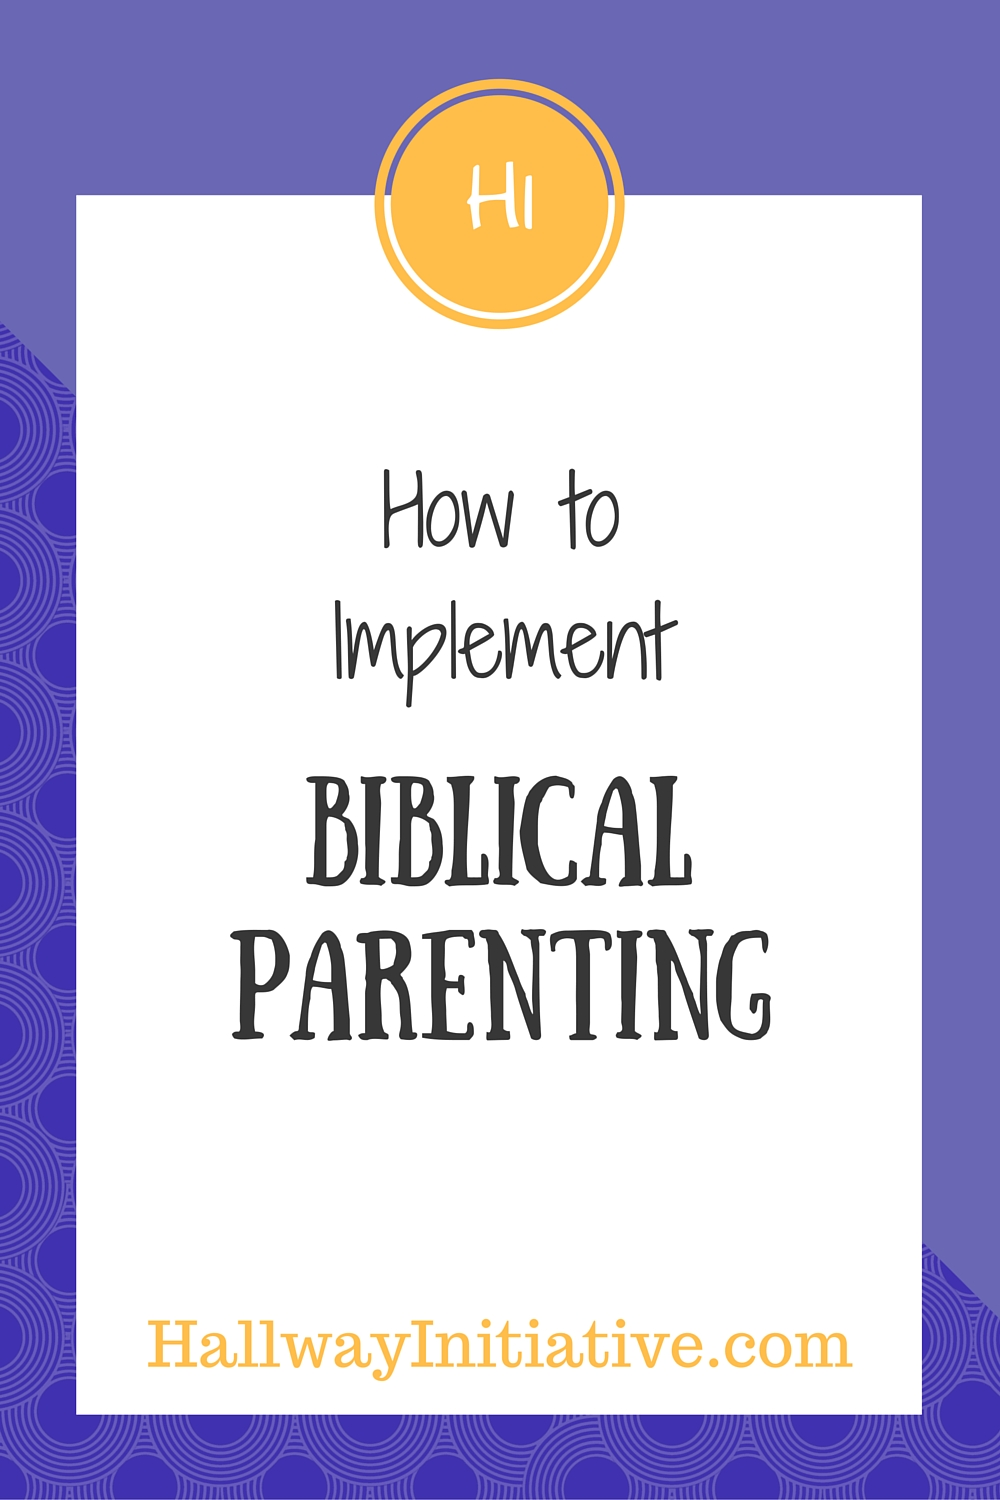 How to implement Biblical parenting